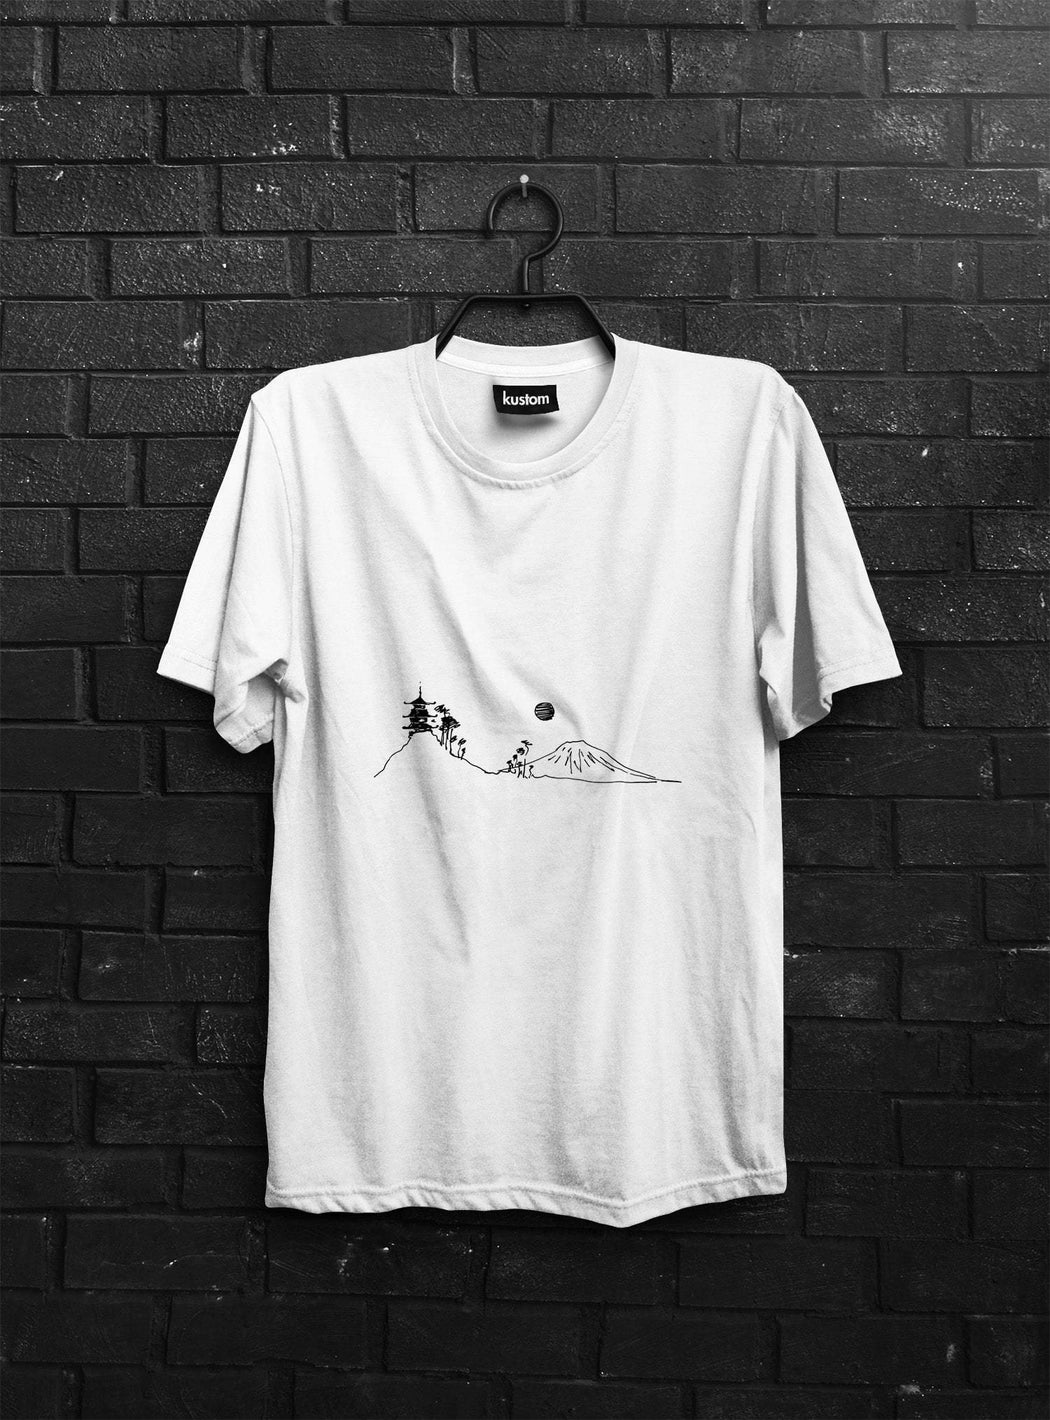 Mount Fuji Eco Tee - Kustom: Tees Factory